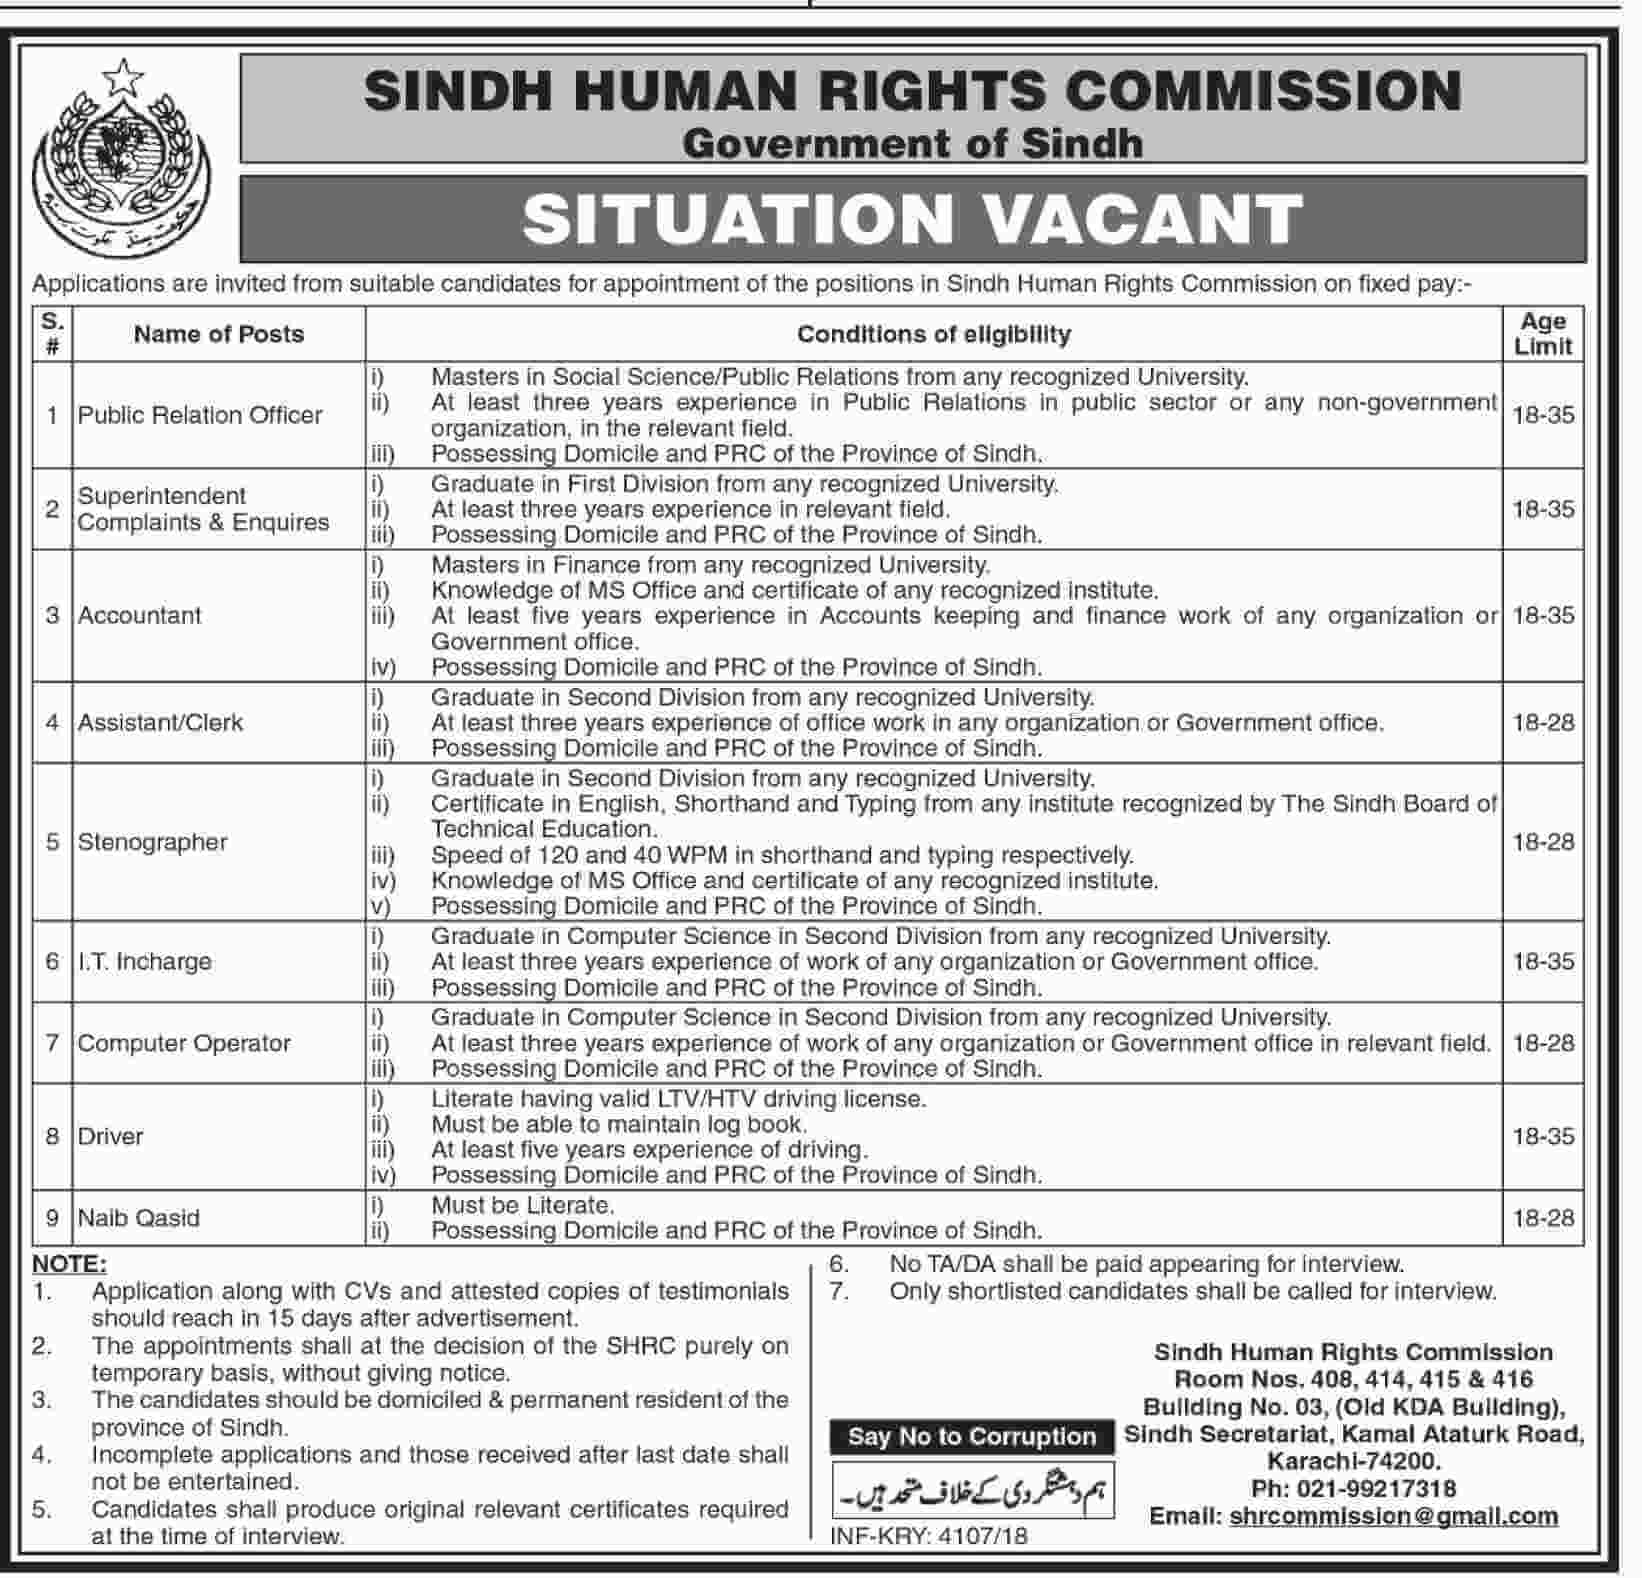 Sindh Humane Rights Commission Jobs 2018 Government Pakistan in Sindh on November, 2018 | Government